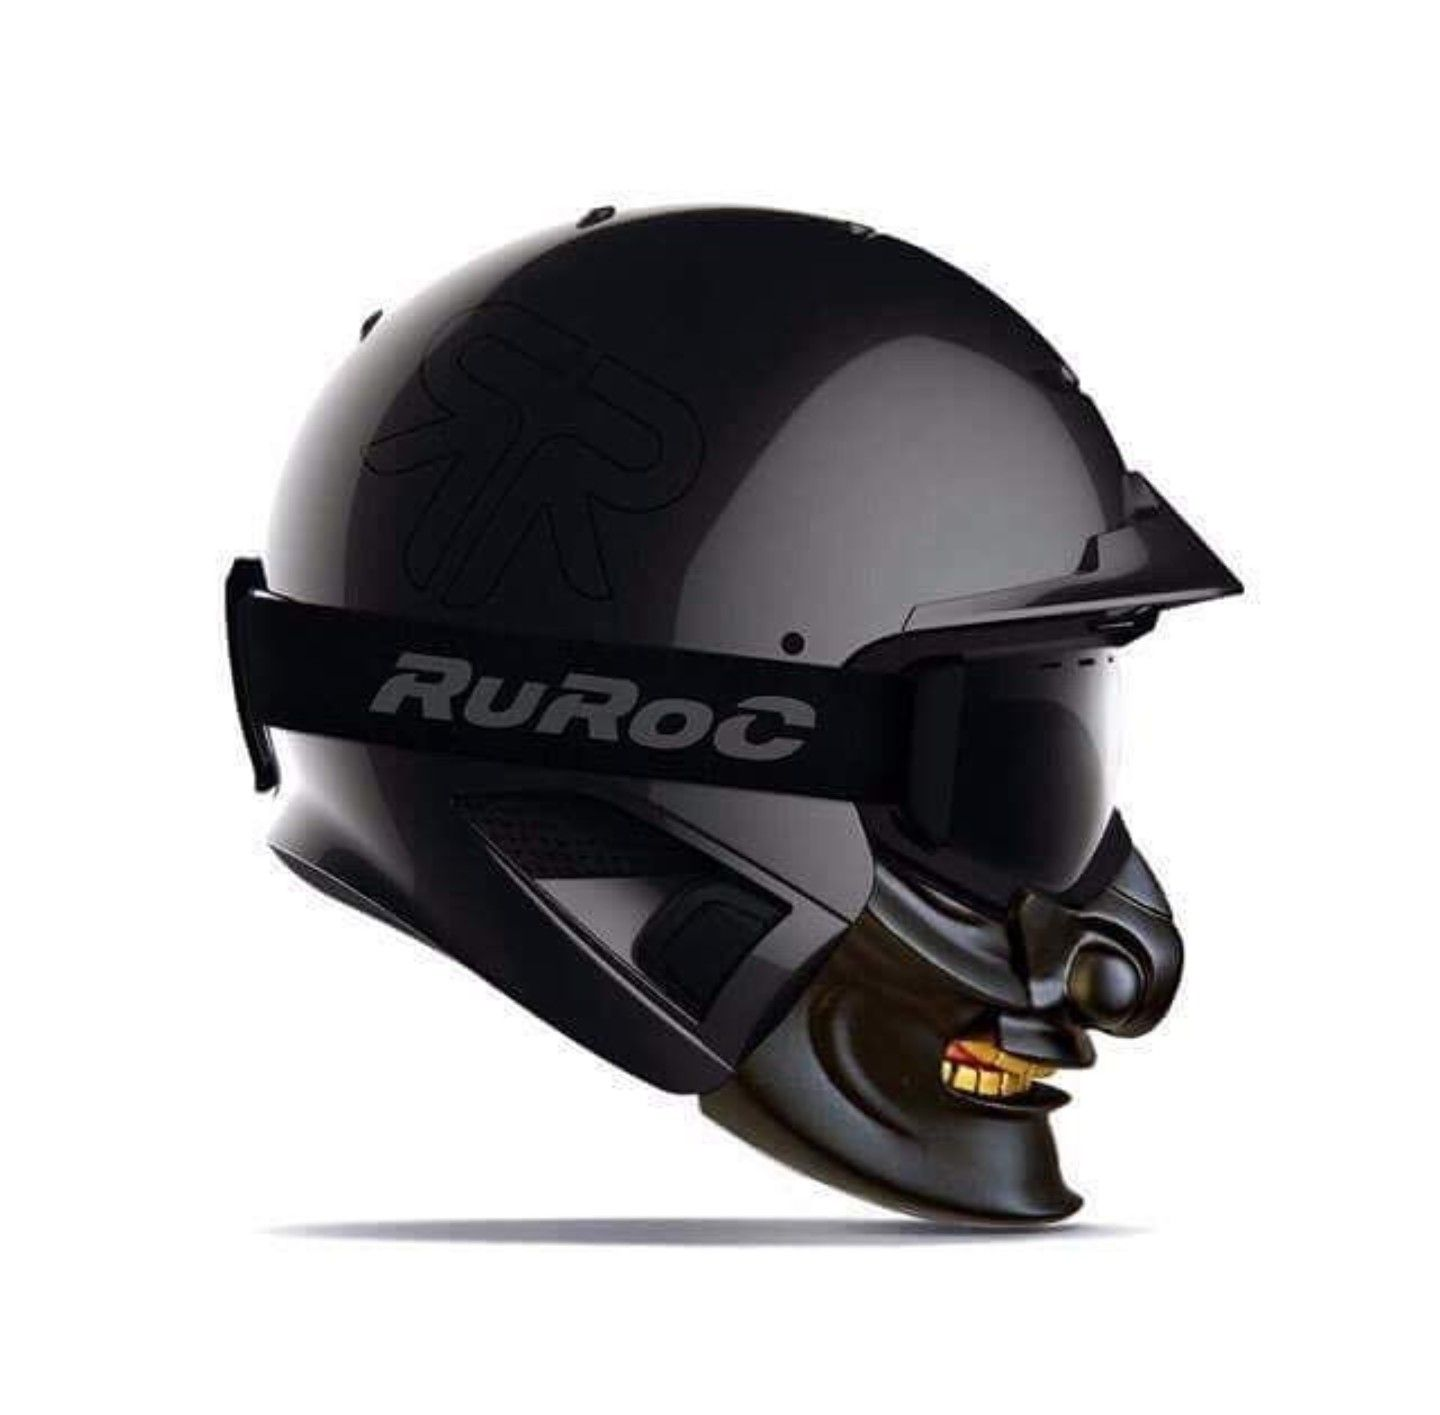 7f4400e7d7e Awesome helmet from Ruroc